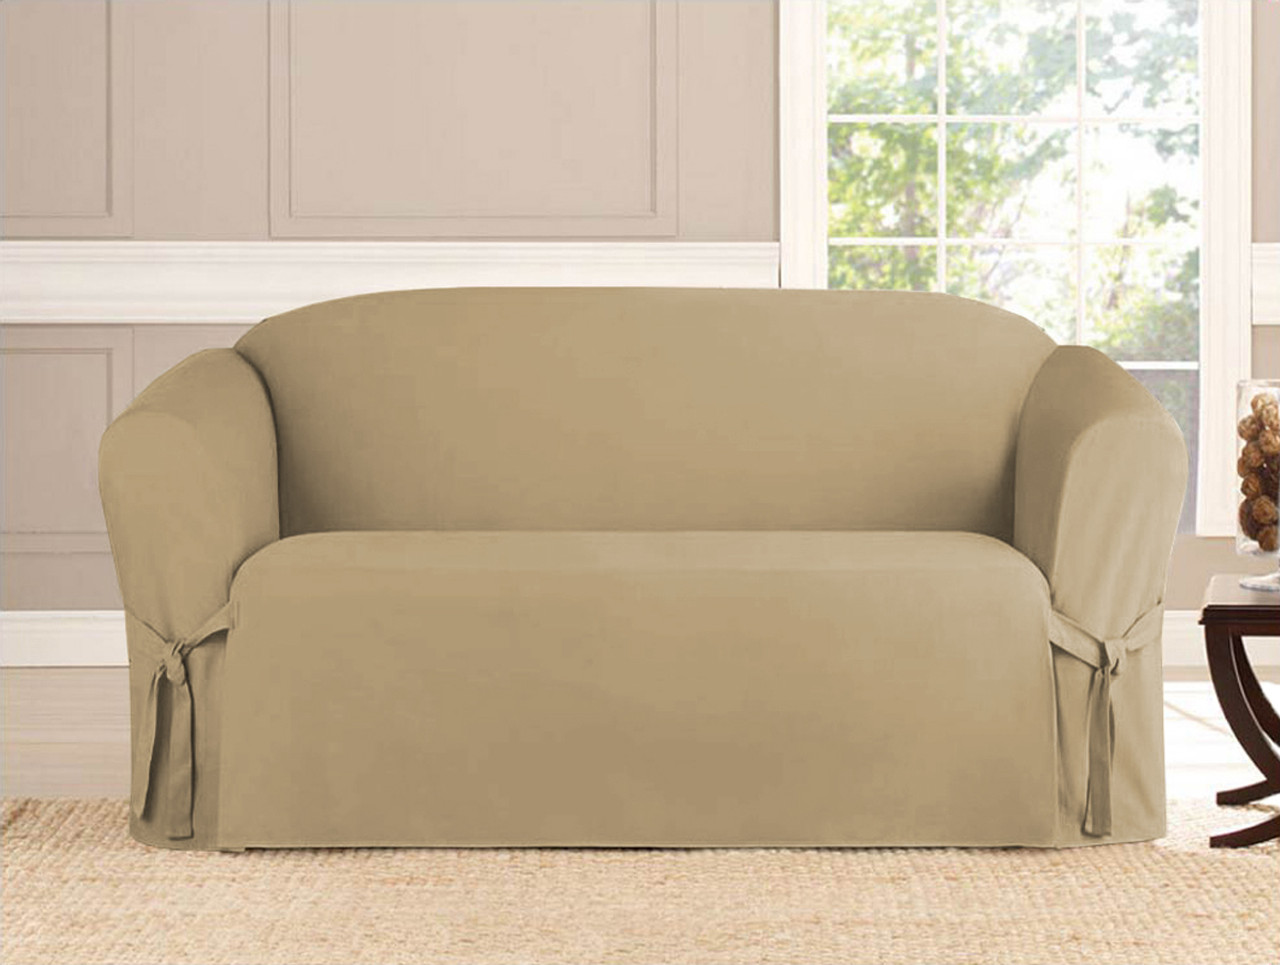 2 Piece Microsuede Furniture Slipcover Linen Store